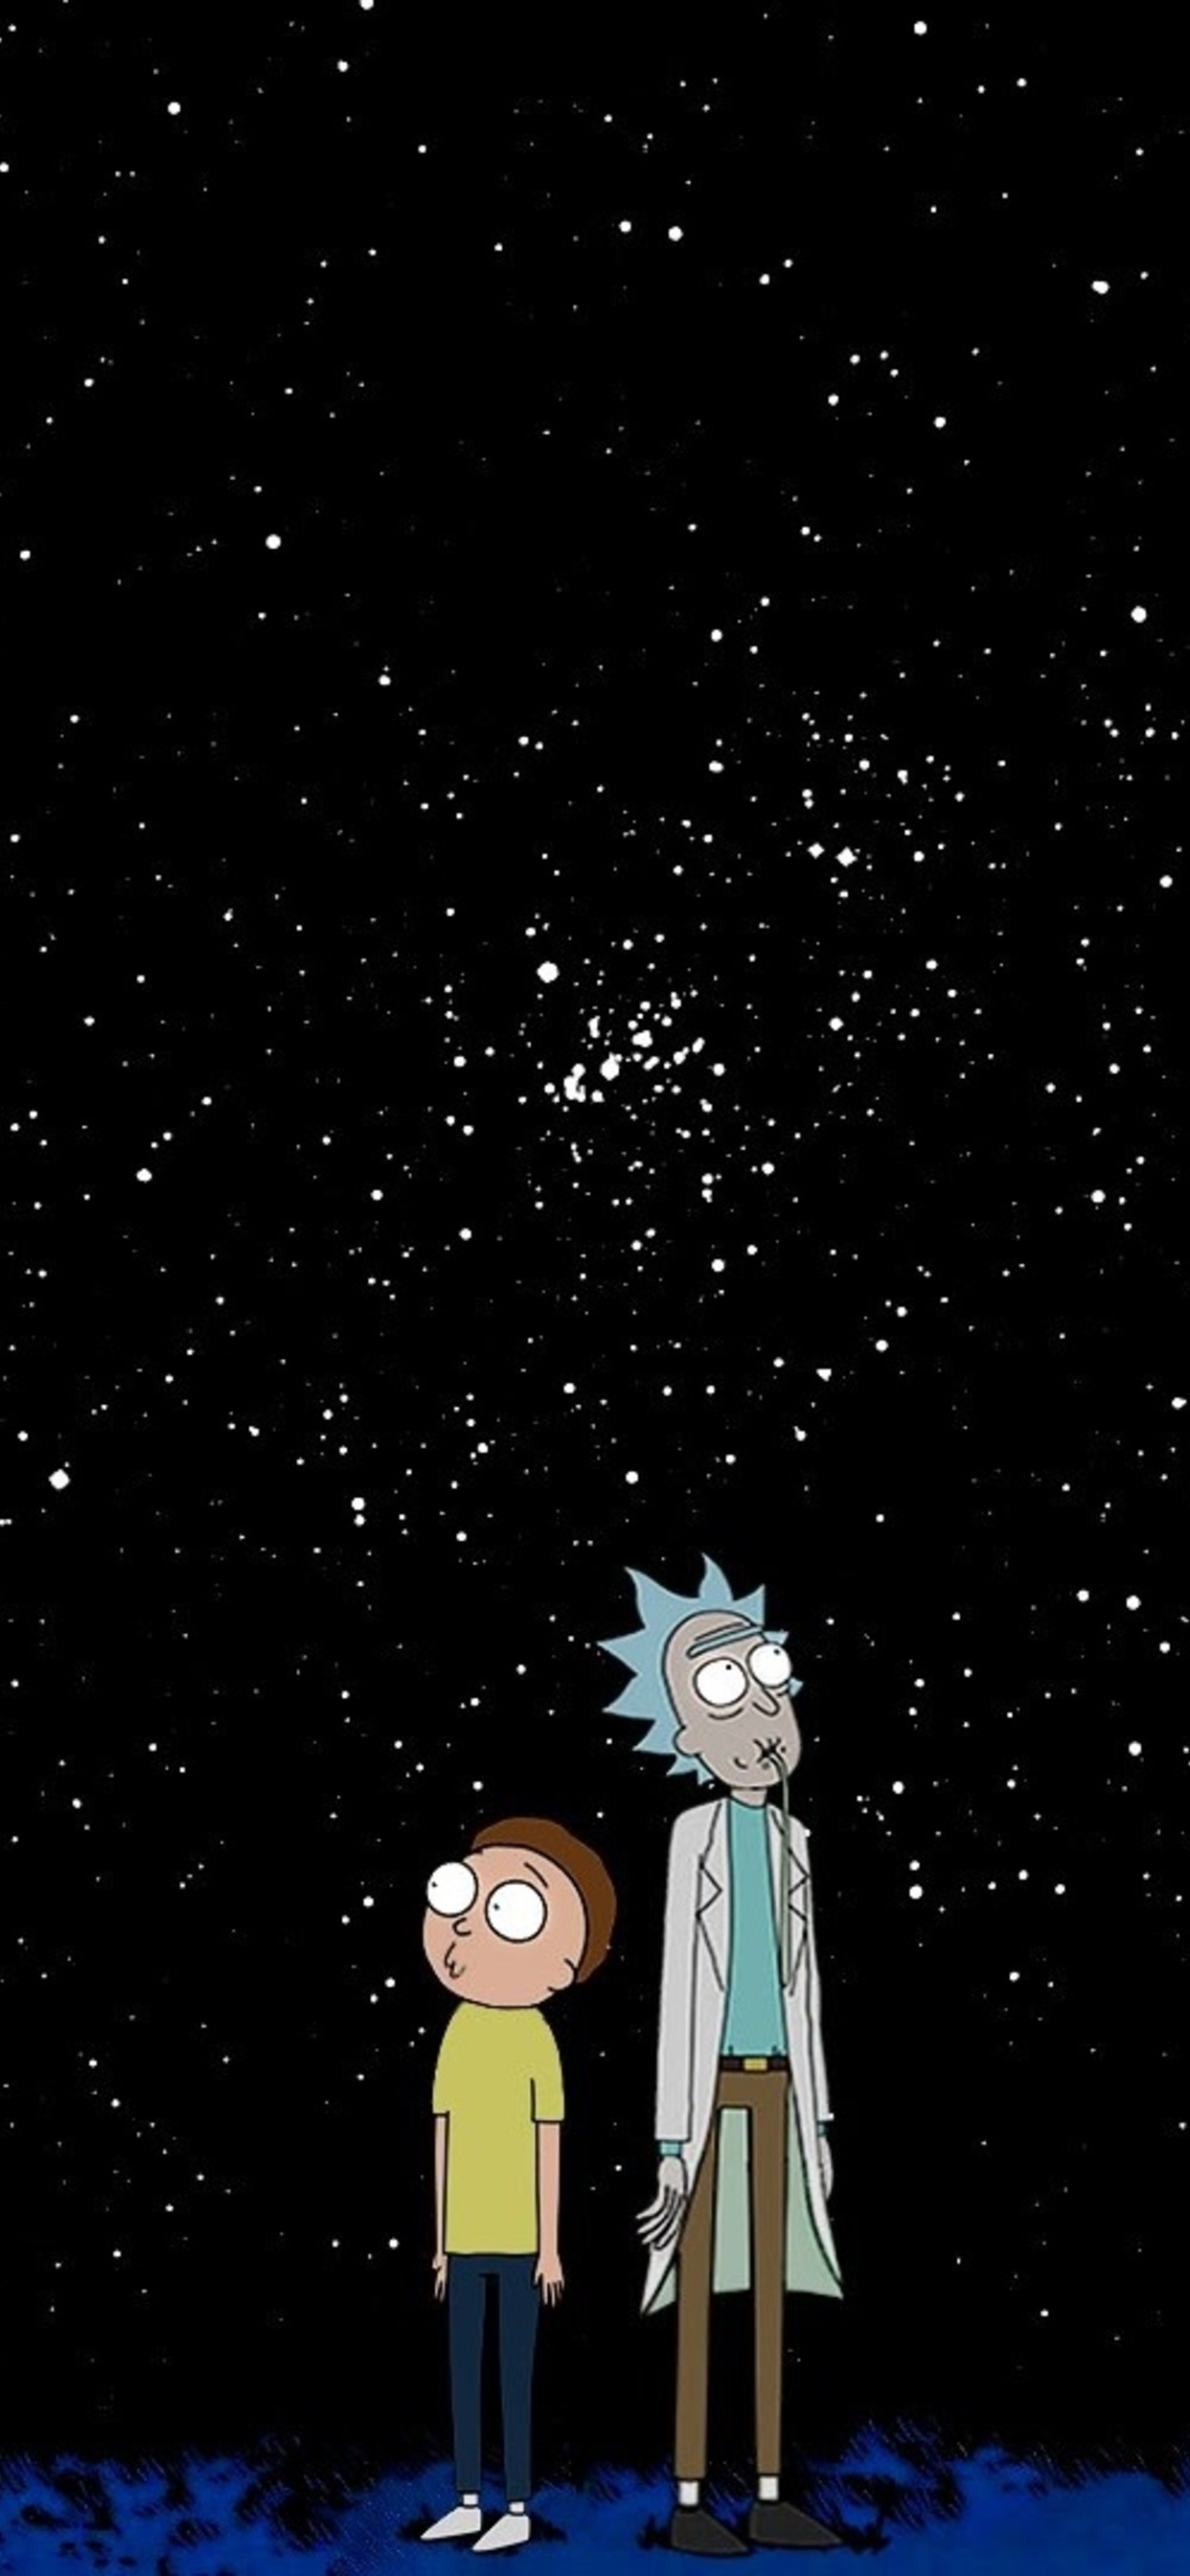 1242x2688 Rick And Morty Hd Iphone Xs Max Hd 4k Wallpapers Images